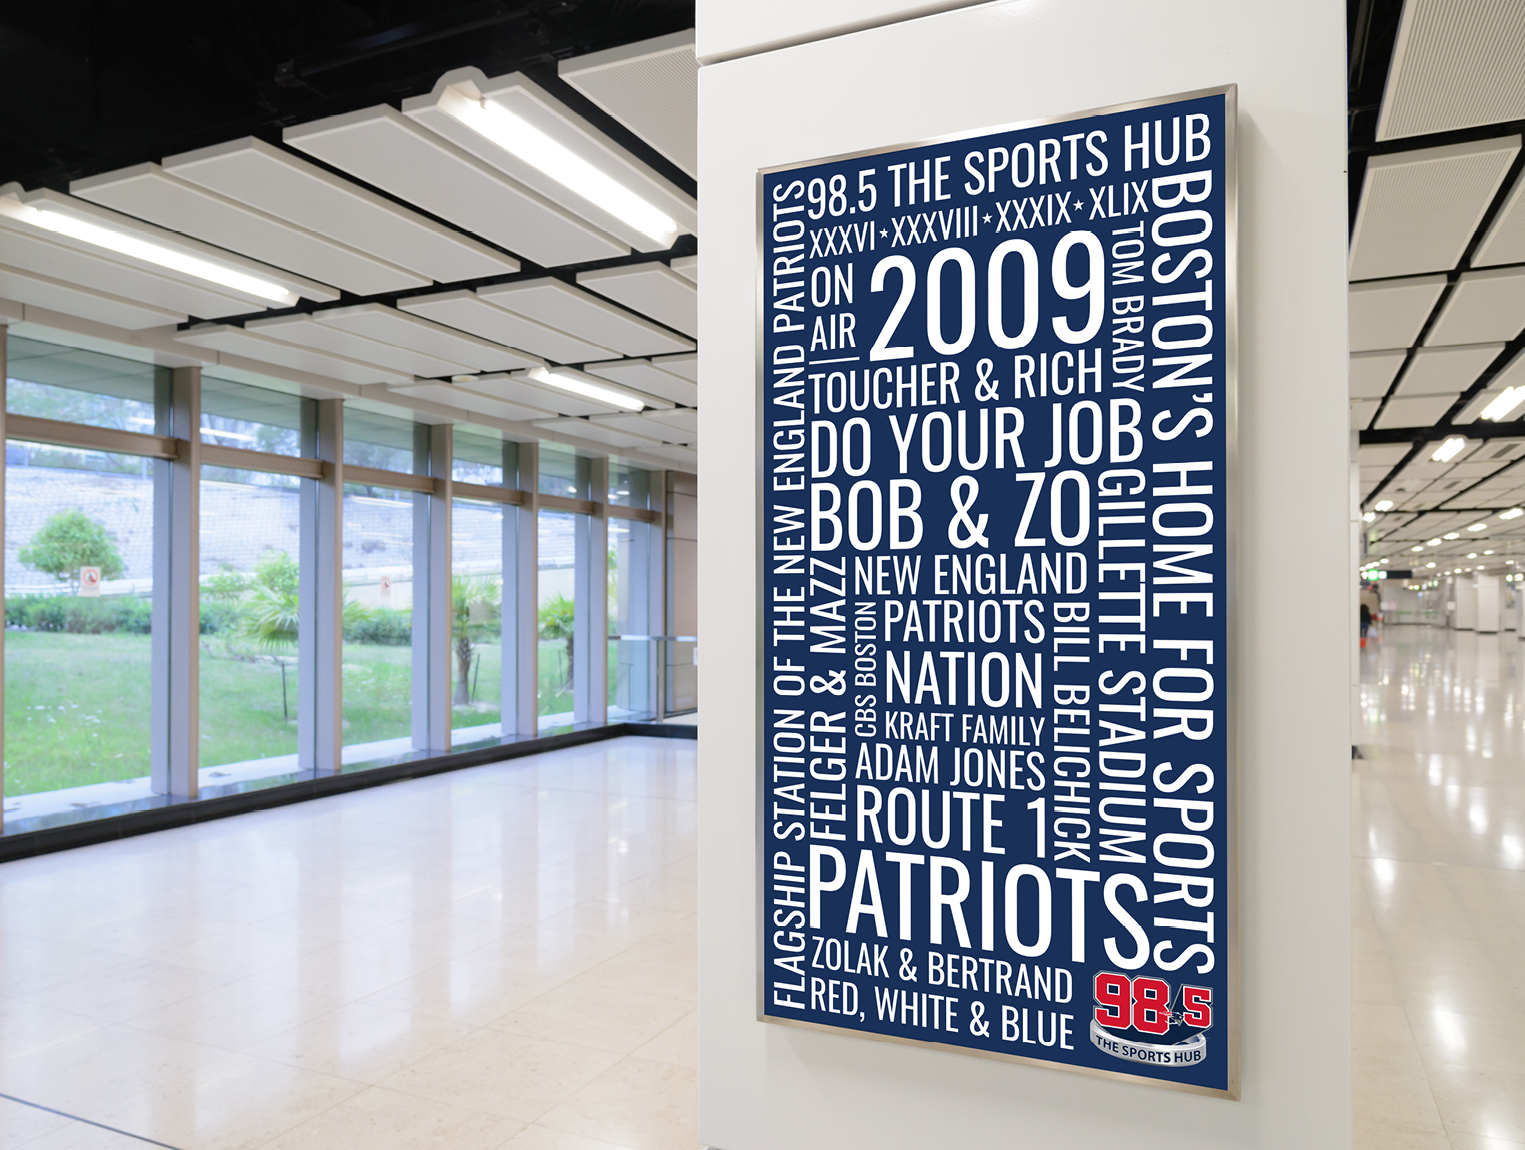 98.5 The Sports Hub Poster